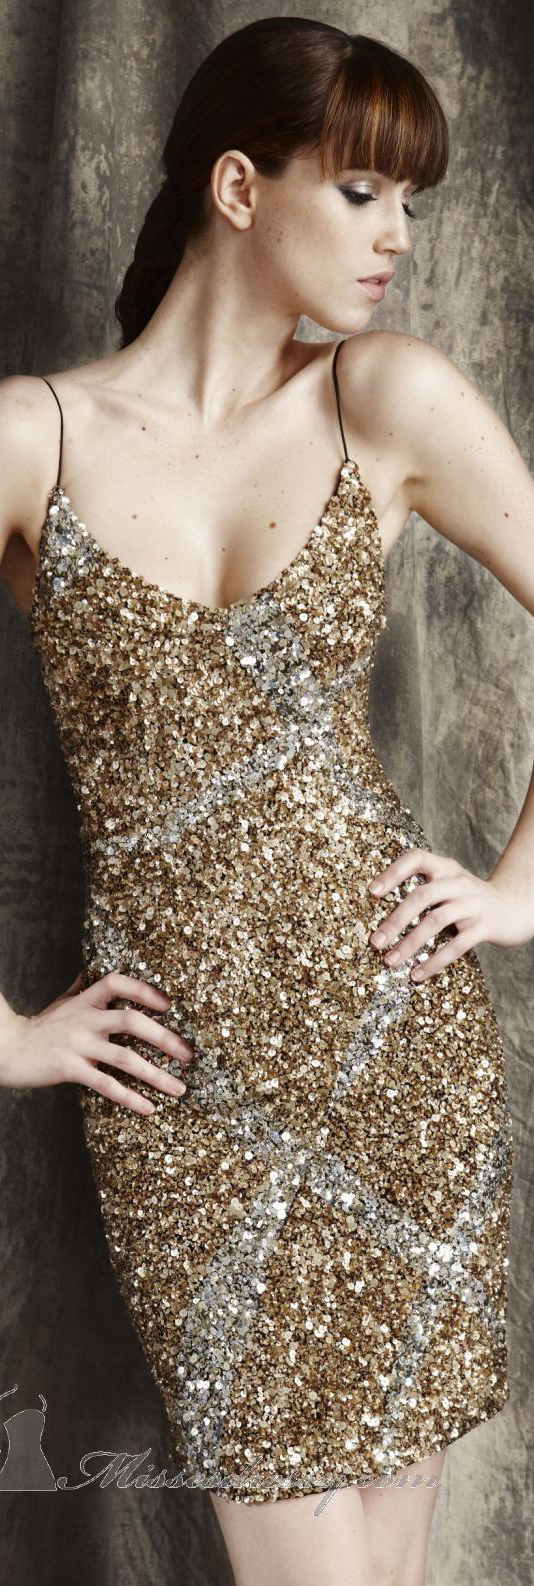 Cocktail dress by theia glitter party dresses pinterest gold